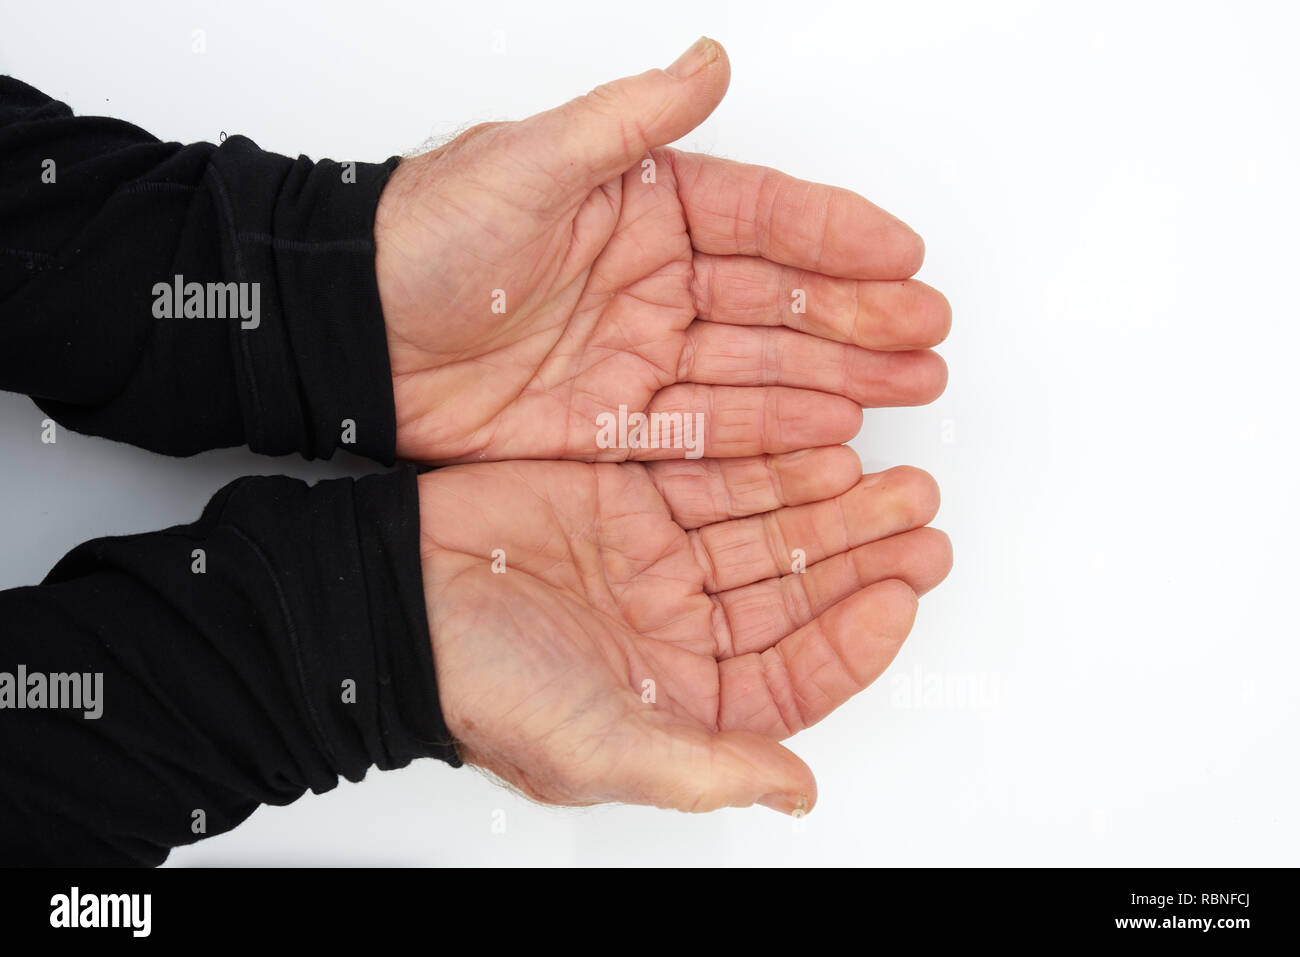 Two hands of an old man cupped in anticipation of receiving something - Stock Image